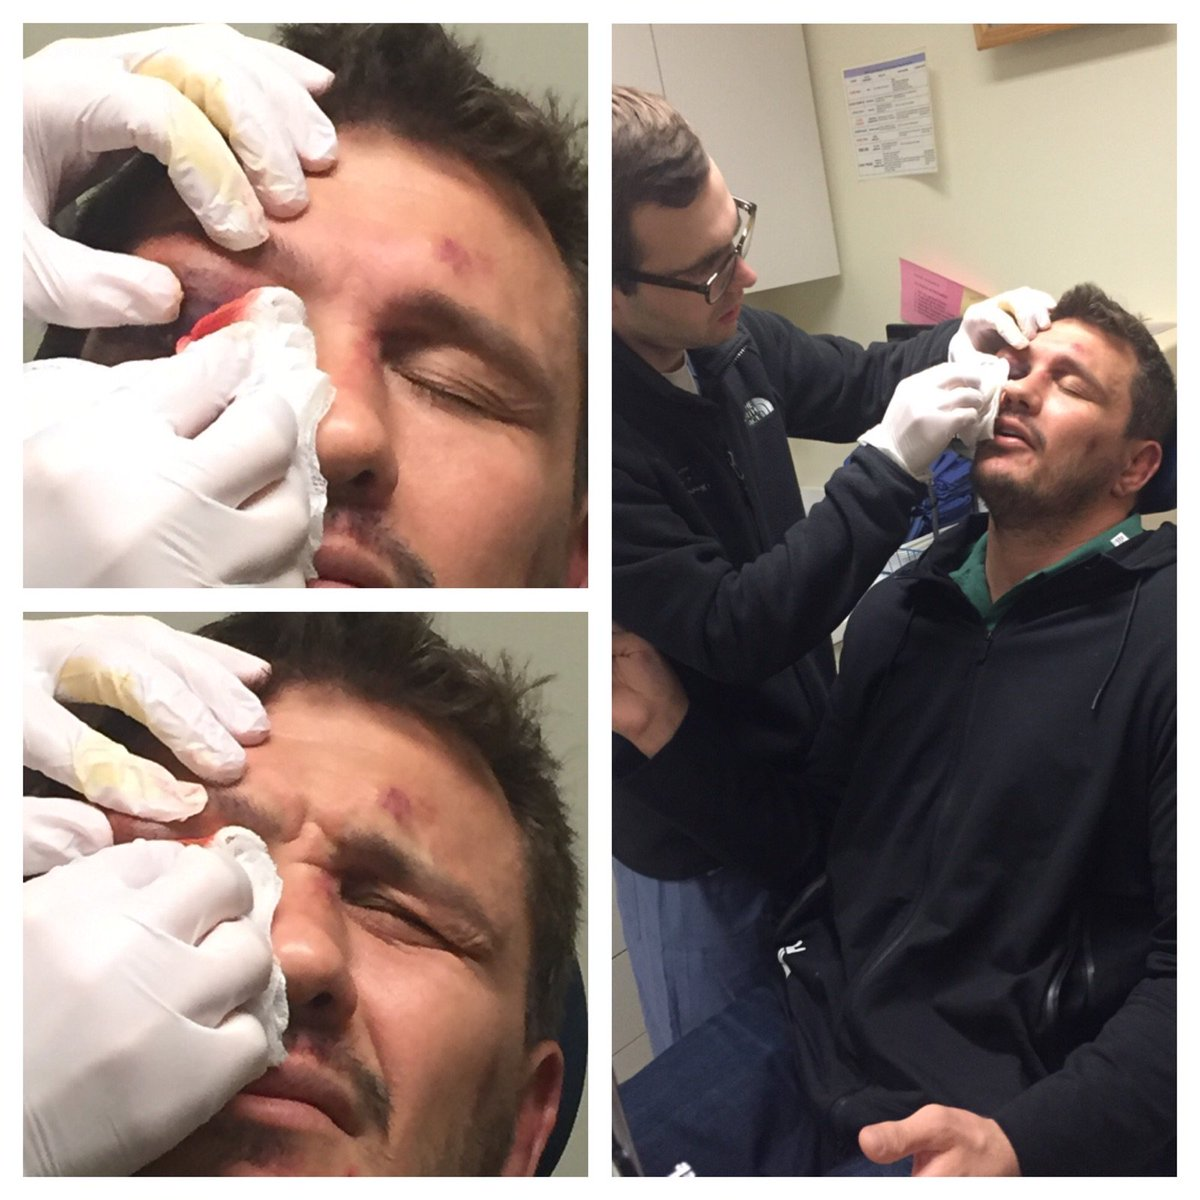 Getting my eyelid drained this morning. Was not awesome. https://t.co/LYgrEKlmHc